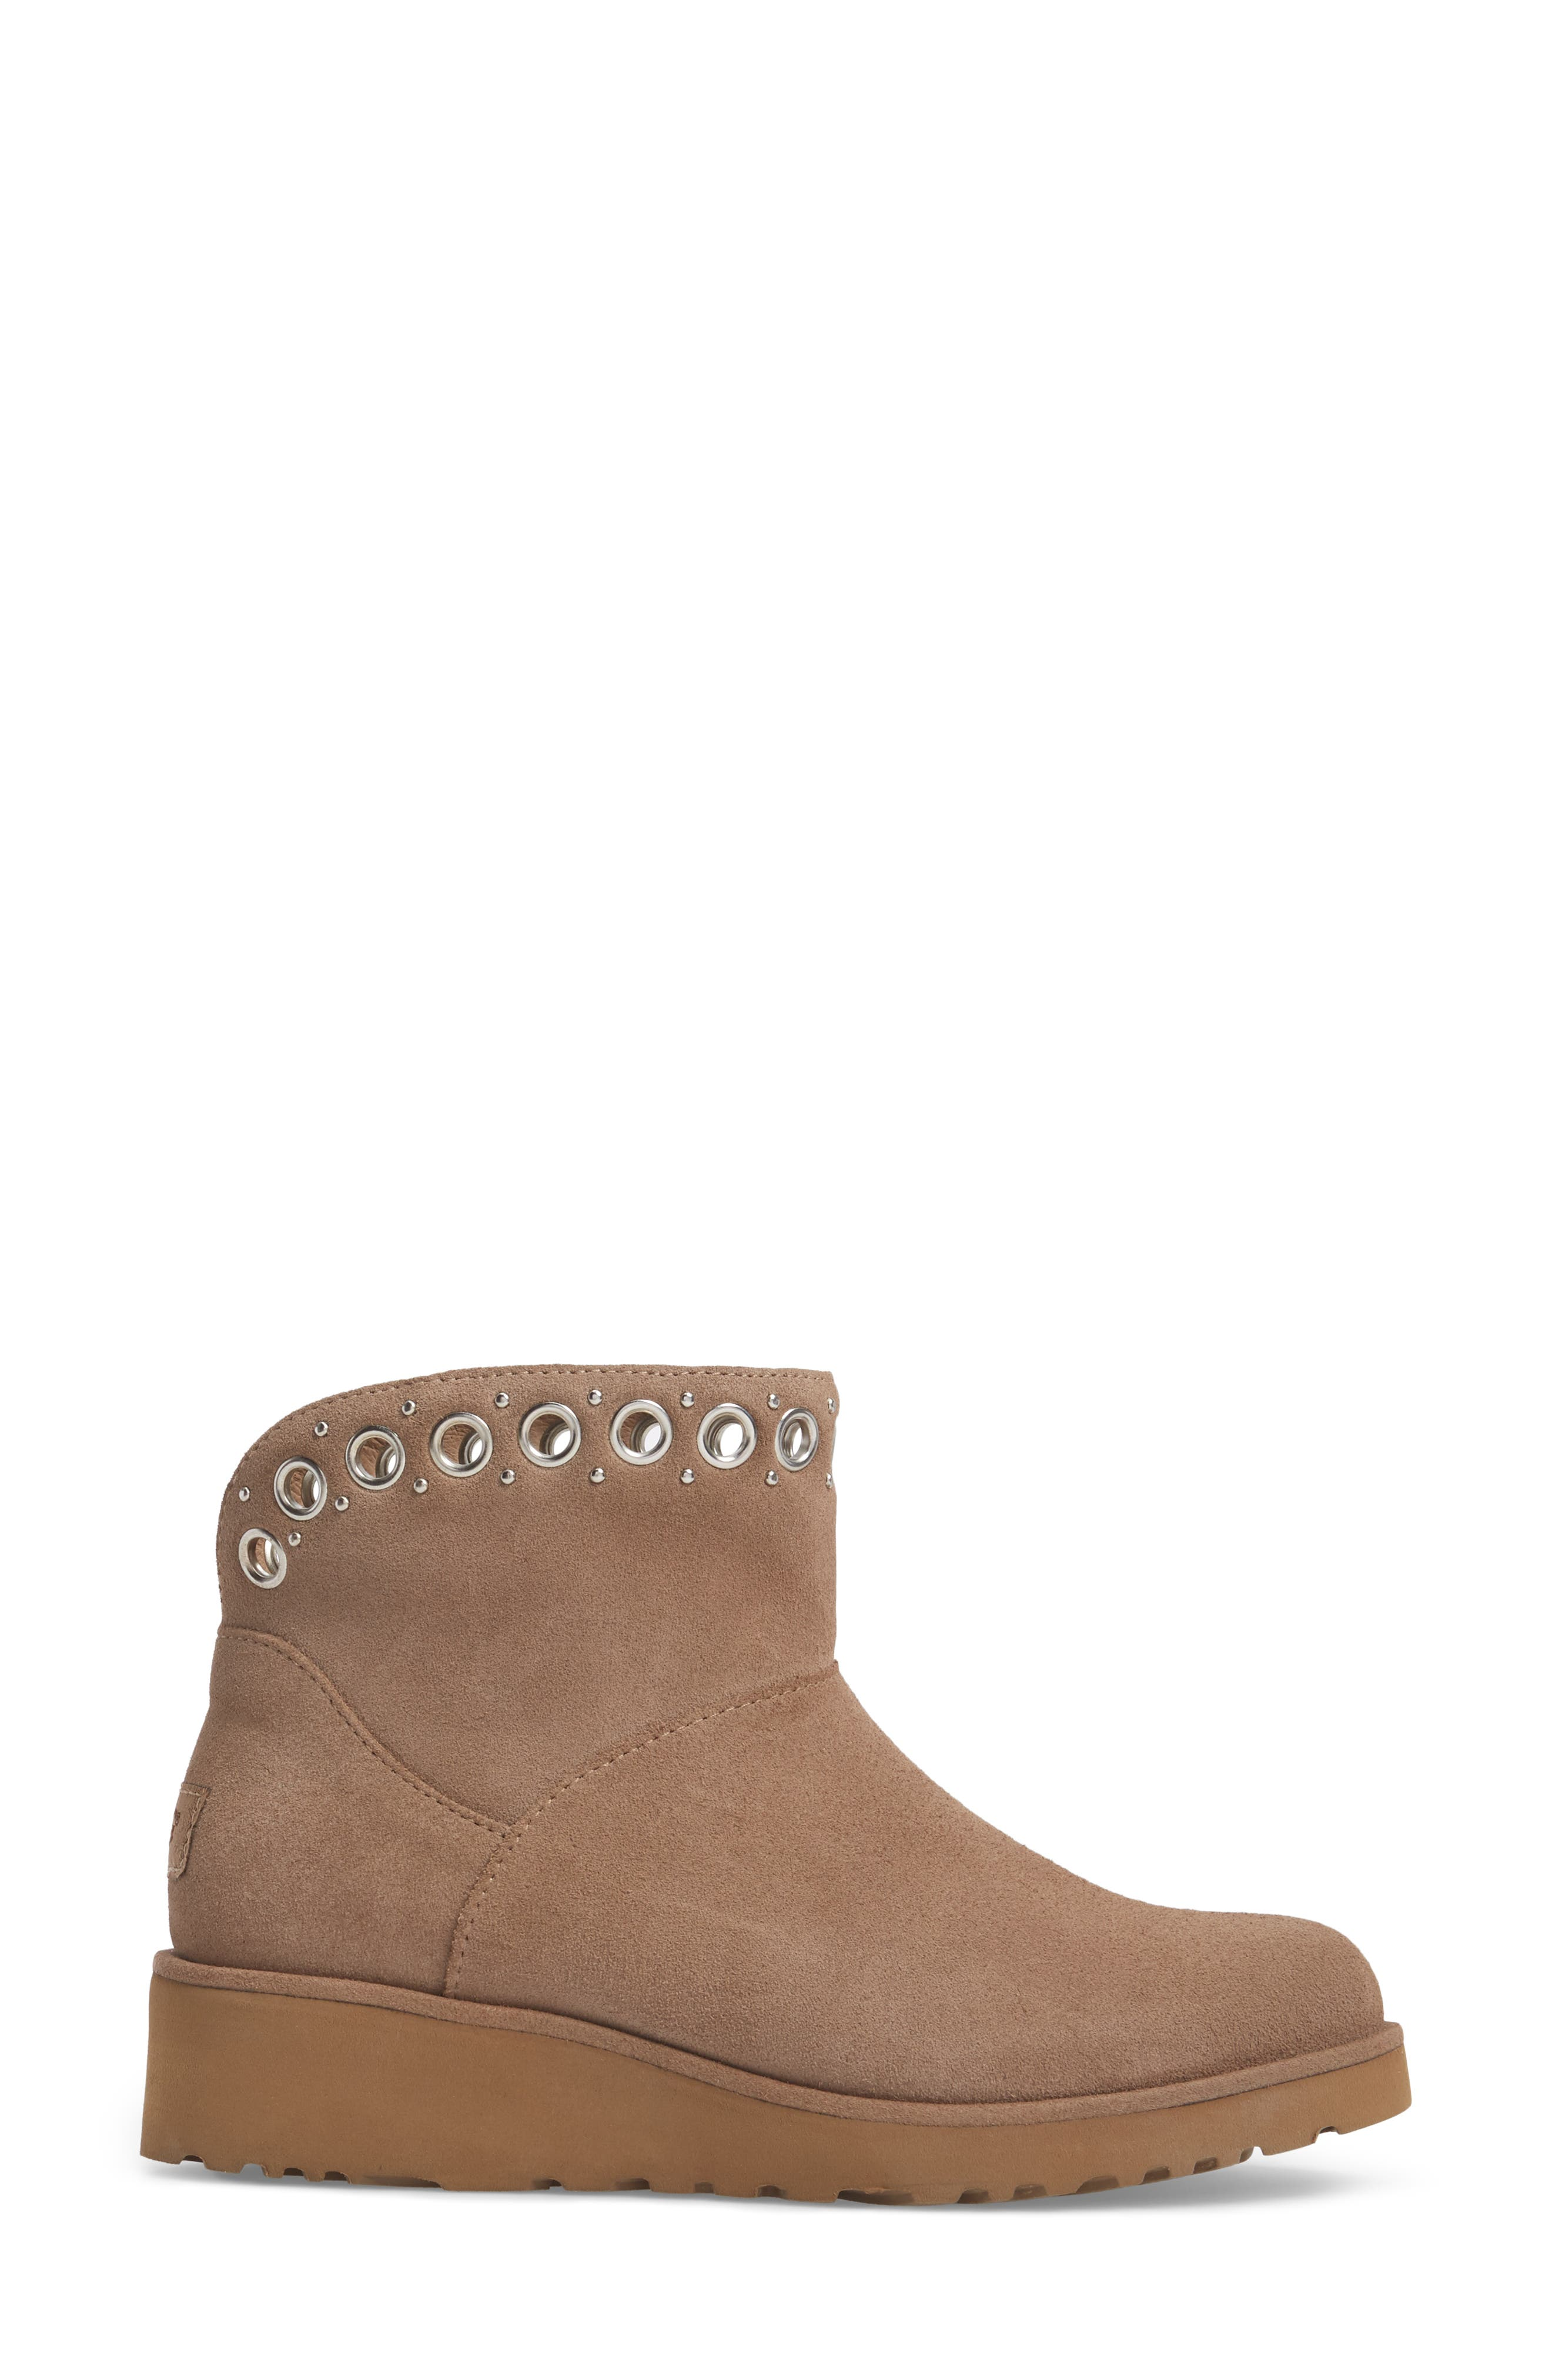 Riley Grommet Wedge Boot,                             Alternate thumbnail 3, color,                             Fawn Suede